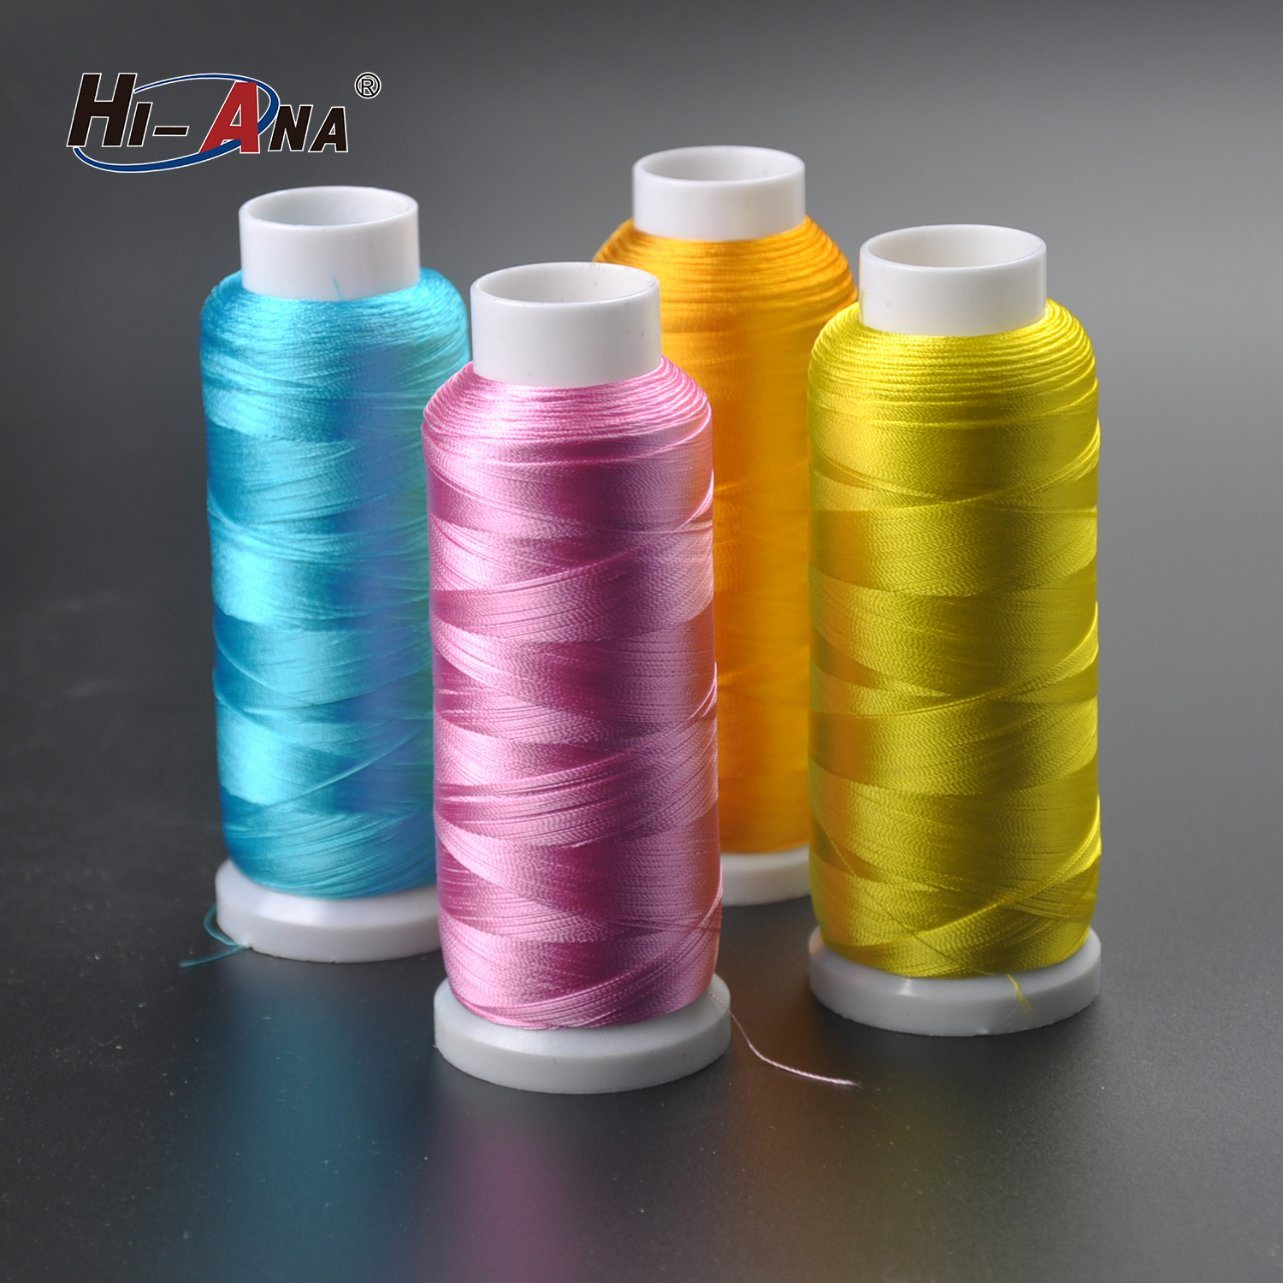 China Global Brands 10 Year Dyed Embroidery Thread Price Photos